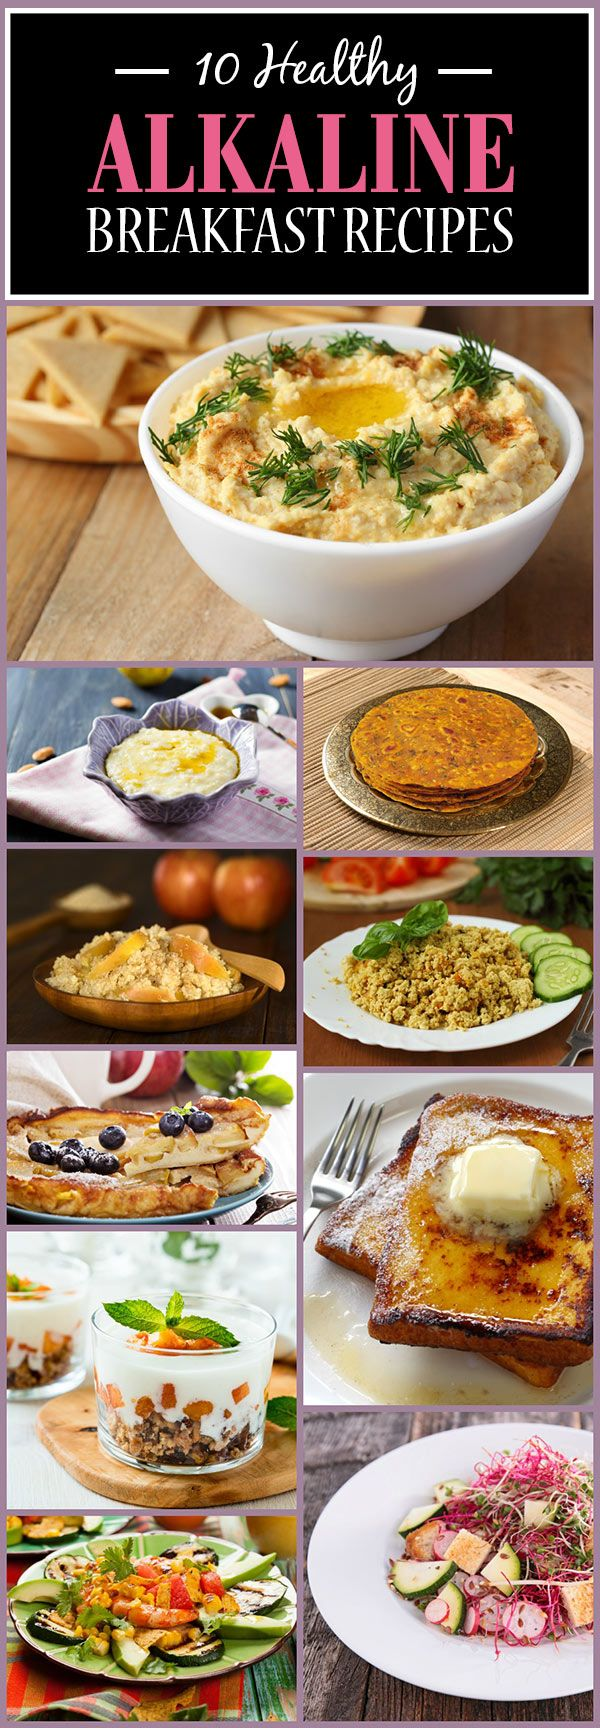 10 healthy alkaline breakfast recipes you must try pinterest looking for some delicious alkaline breakfast recipes we have some of the best ones enlisted for you they taste great and offer you a large number of forumfinder Images